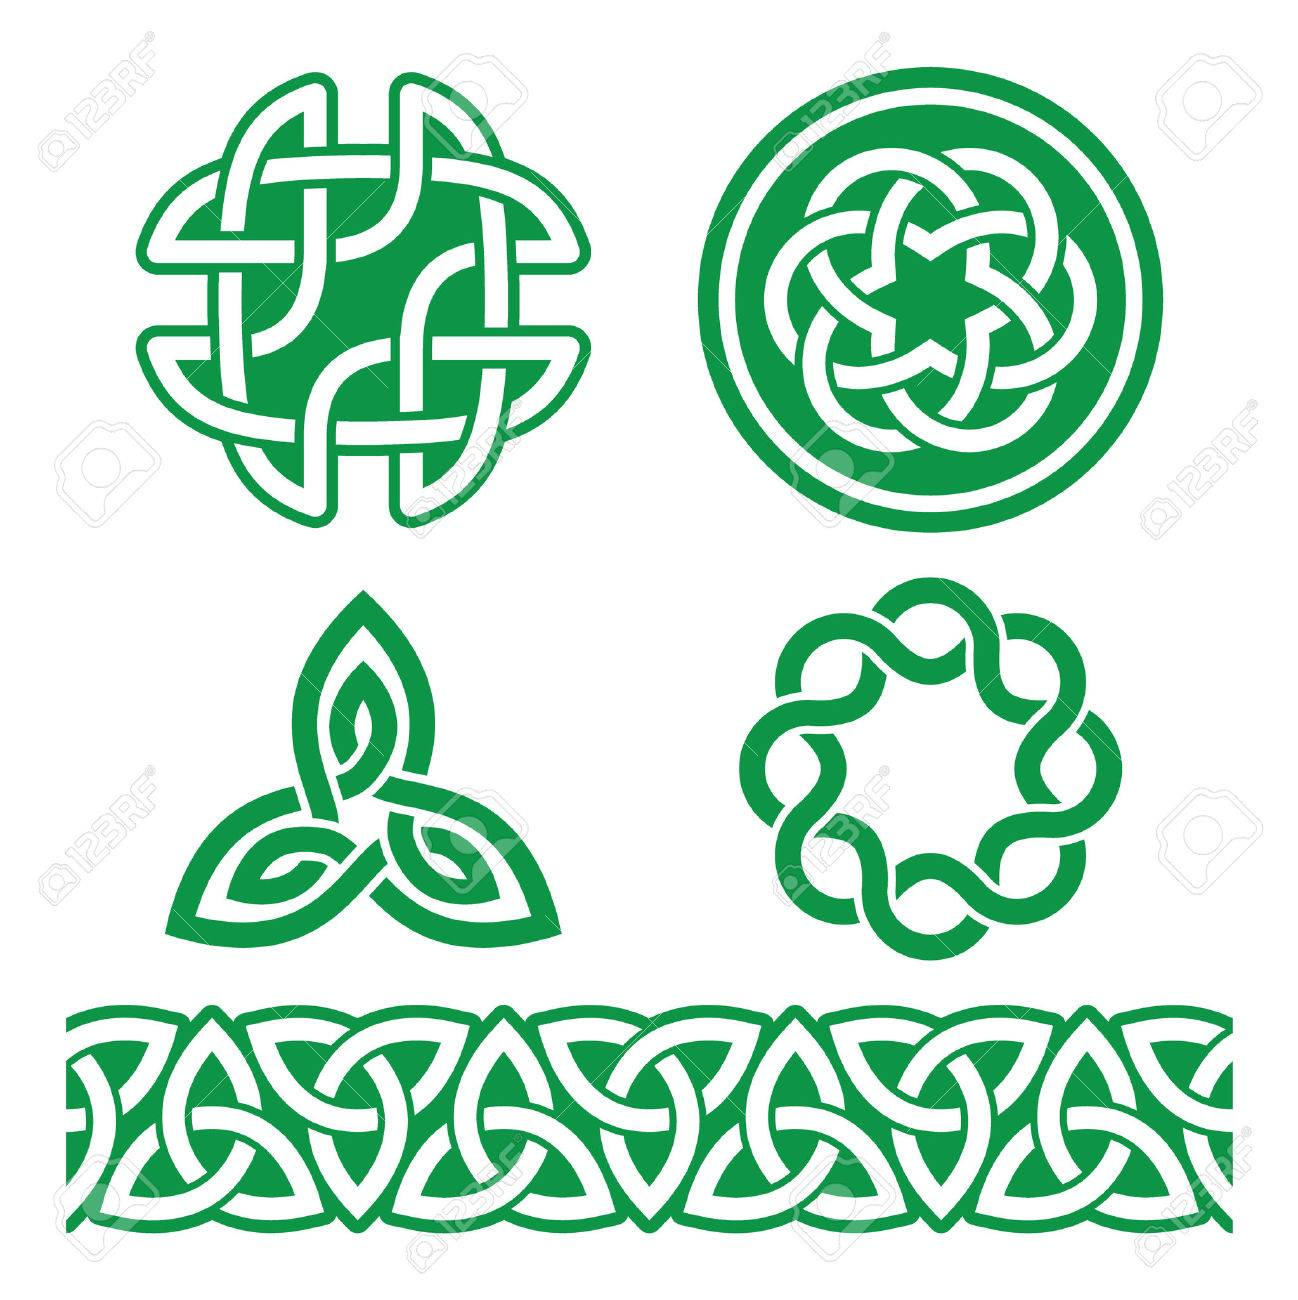 Celtic Irish green patterns and knots - vector, St Patrick's Day - 50046338